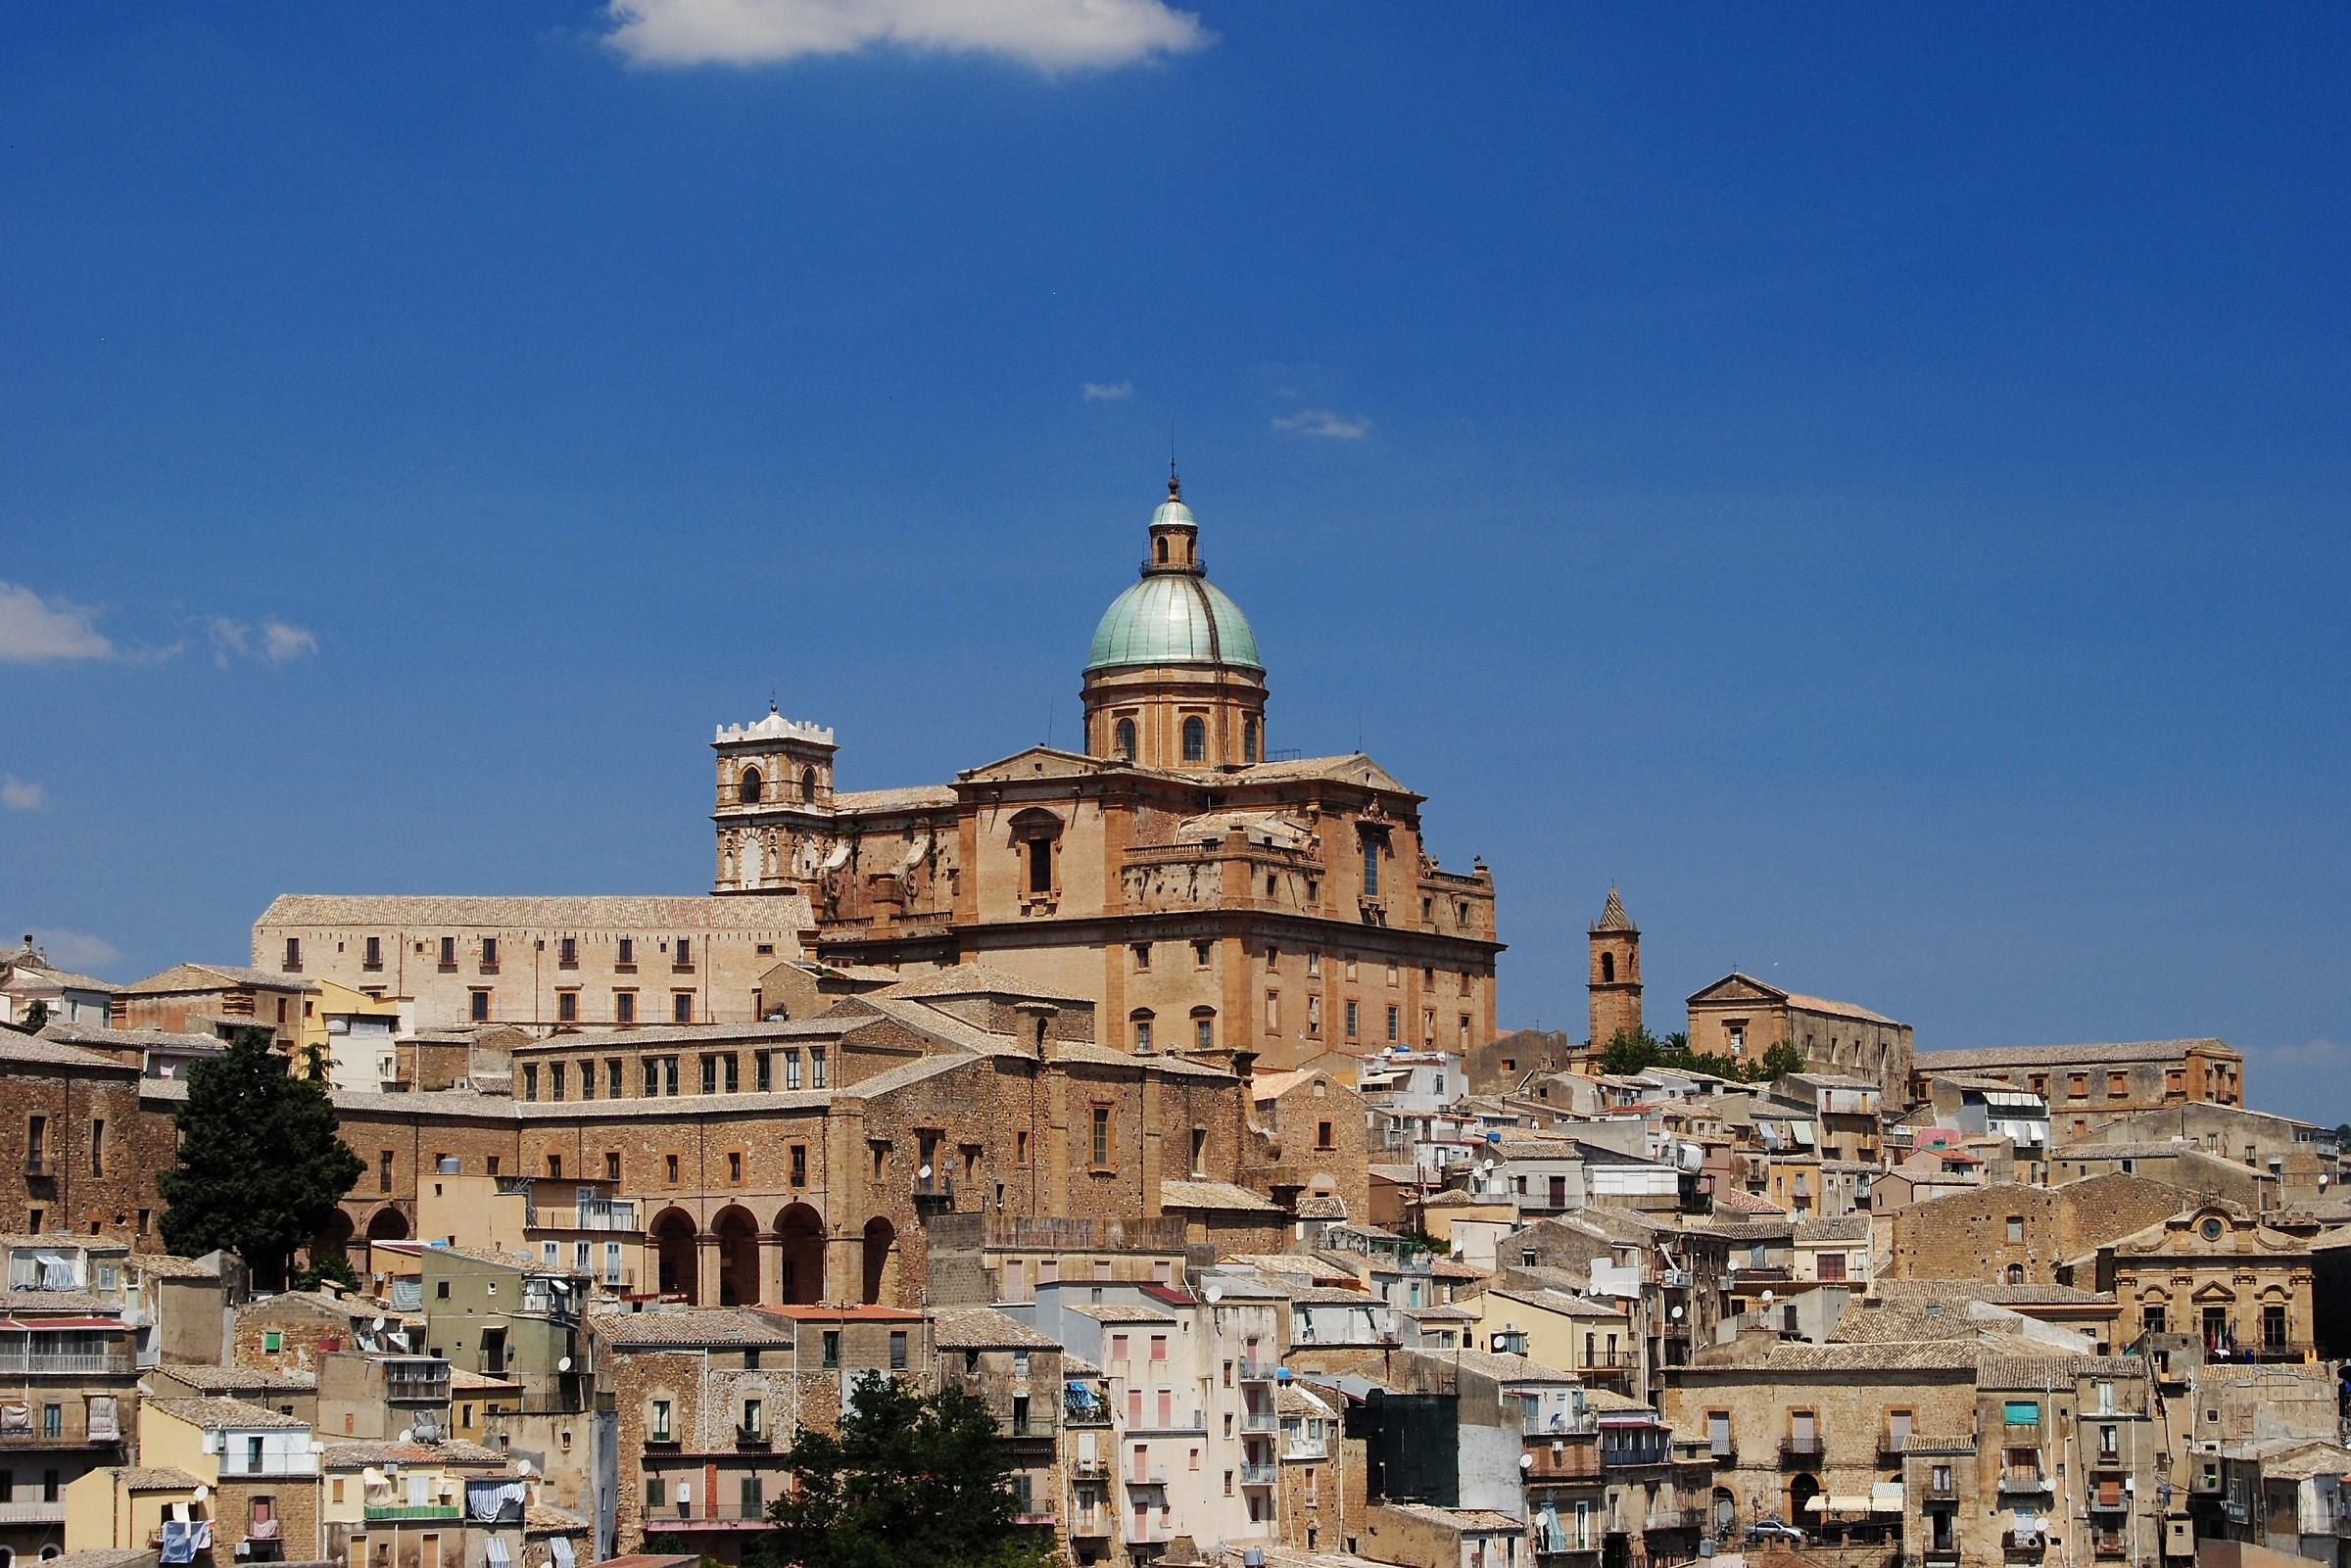 Piazza Armerina and its cathedral...